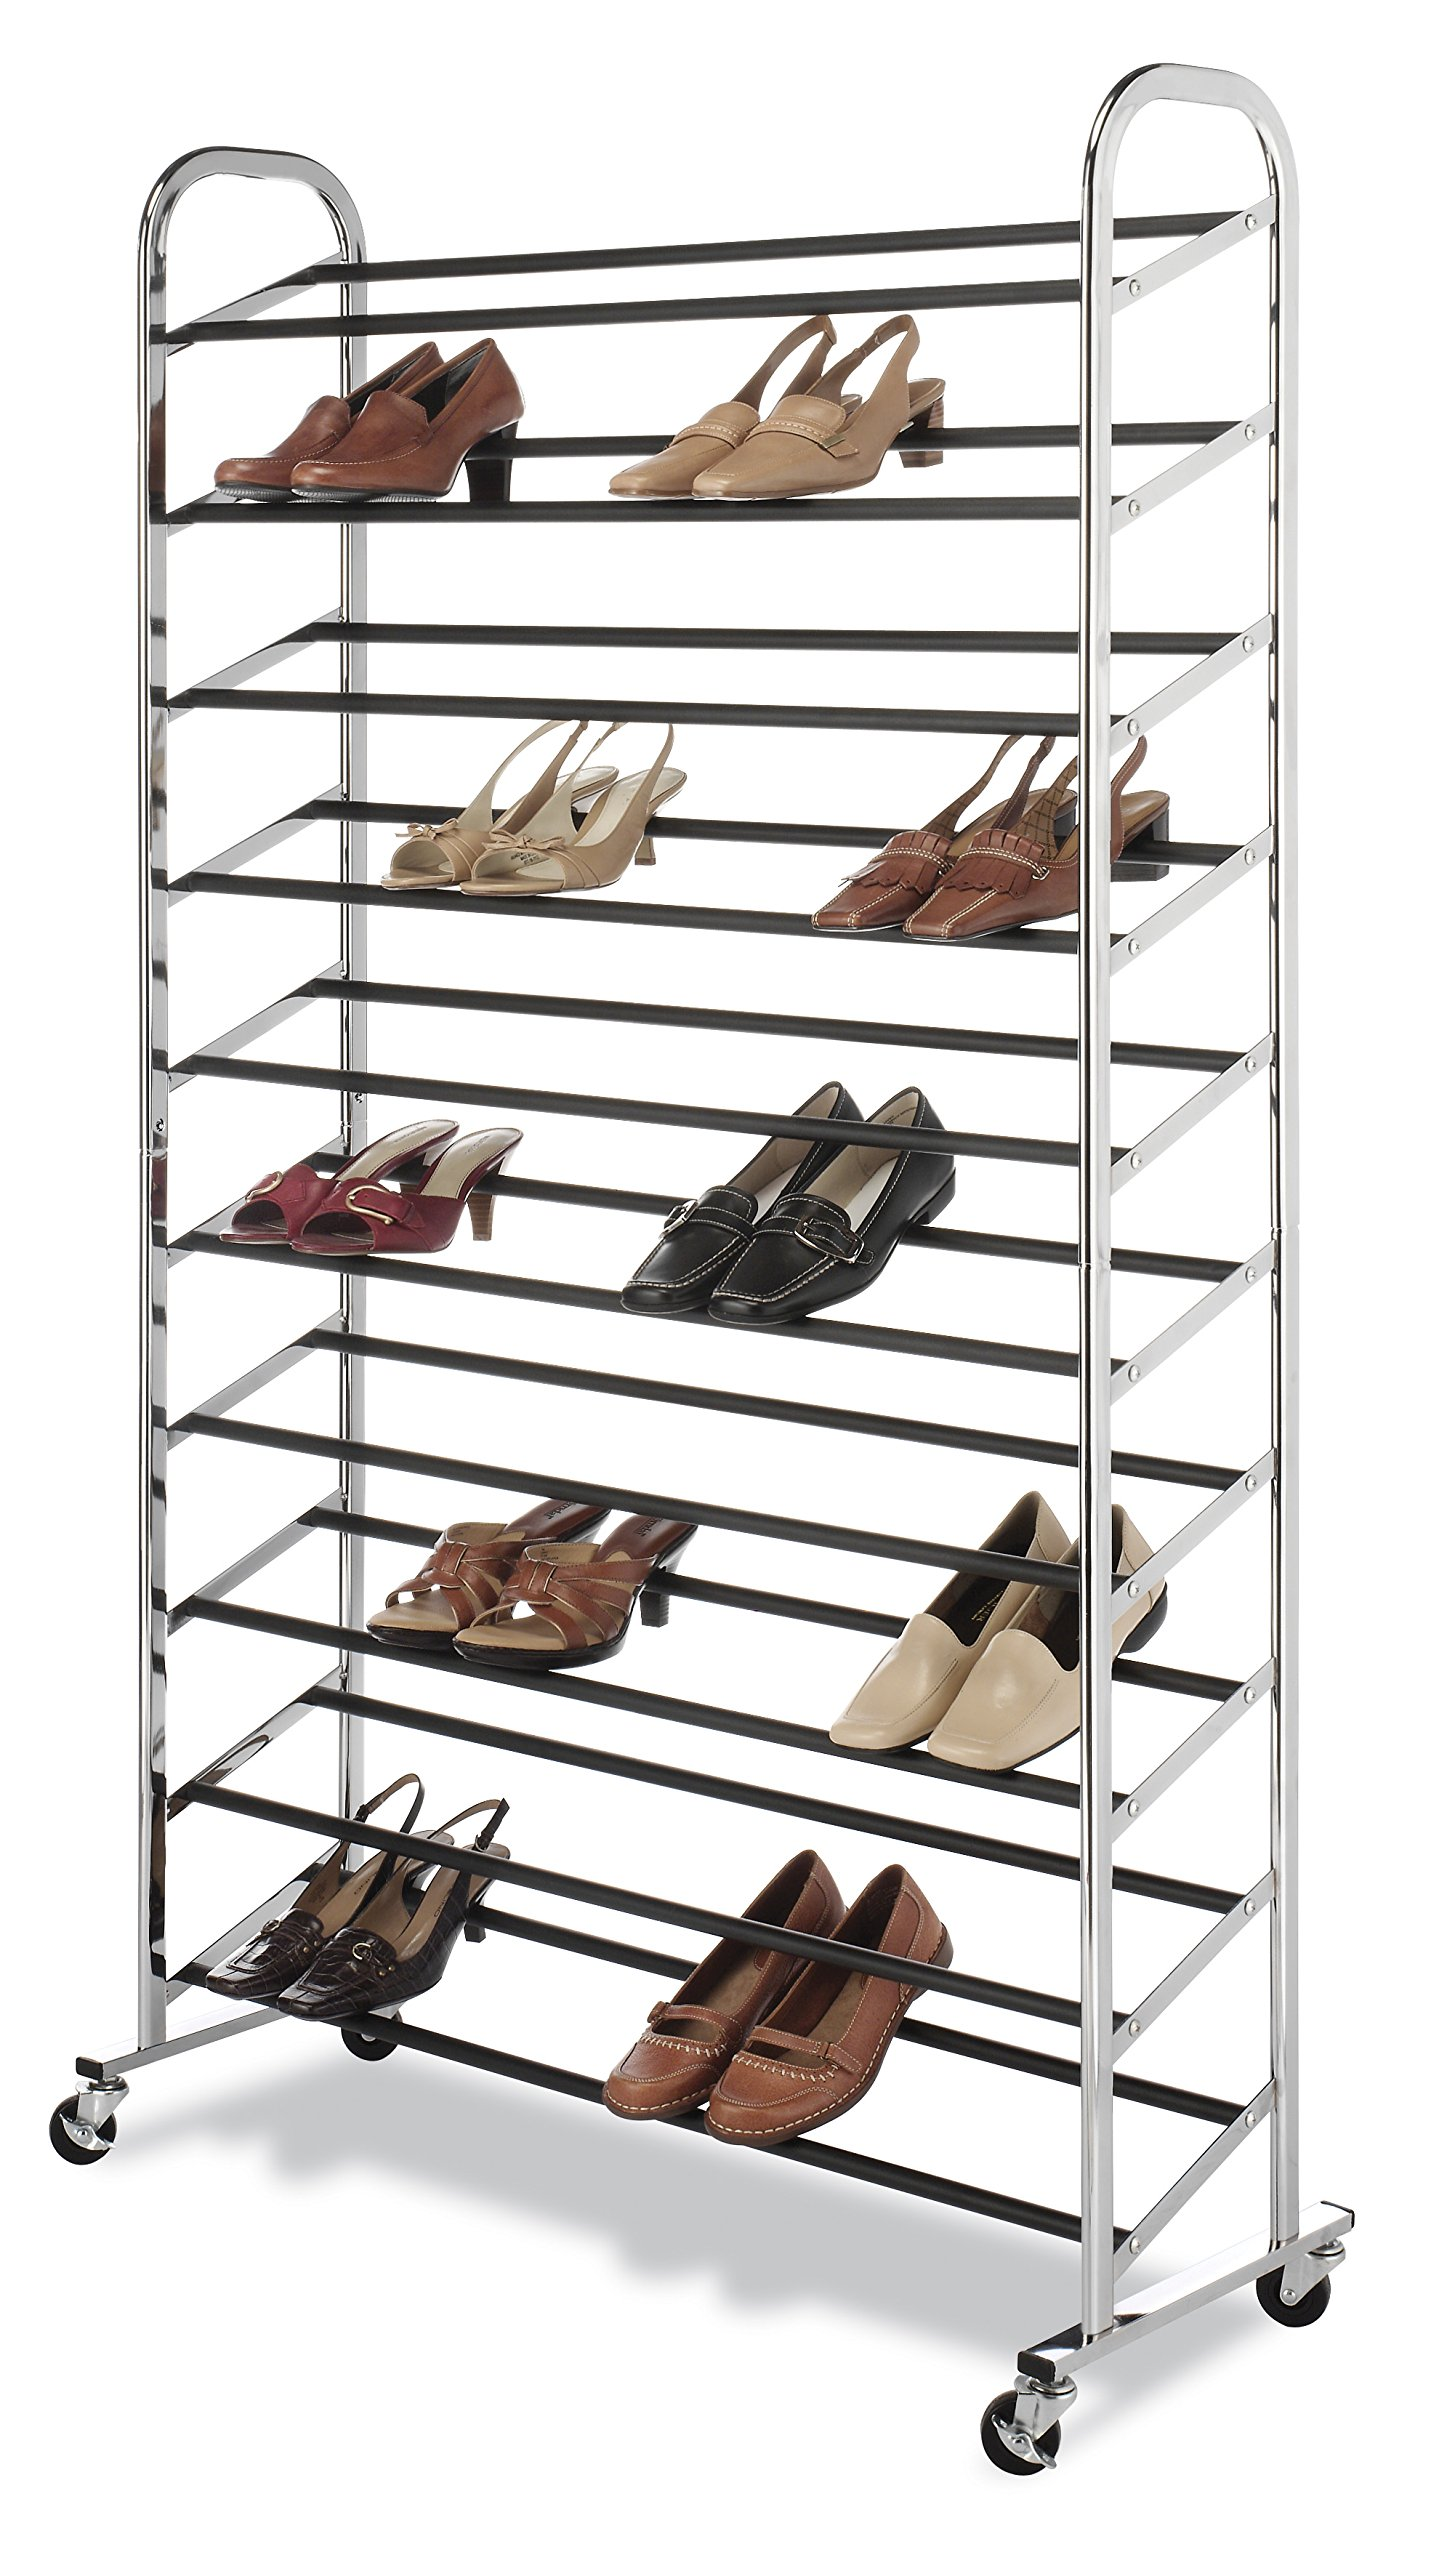 Whitmor 10 Tier Shoe Tower - 50 Pair - Rolling Shoe Rack with Locking Wheels - Chrome by Whitmor (Image #3)